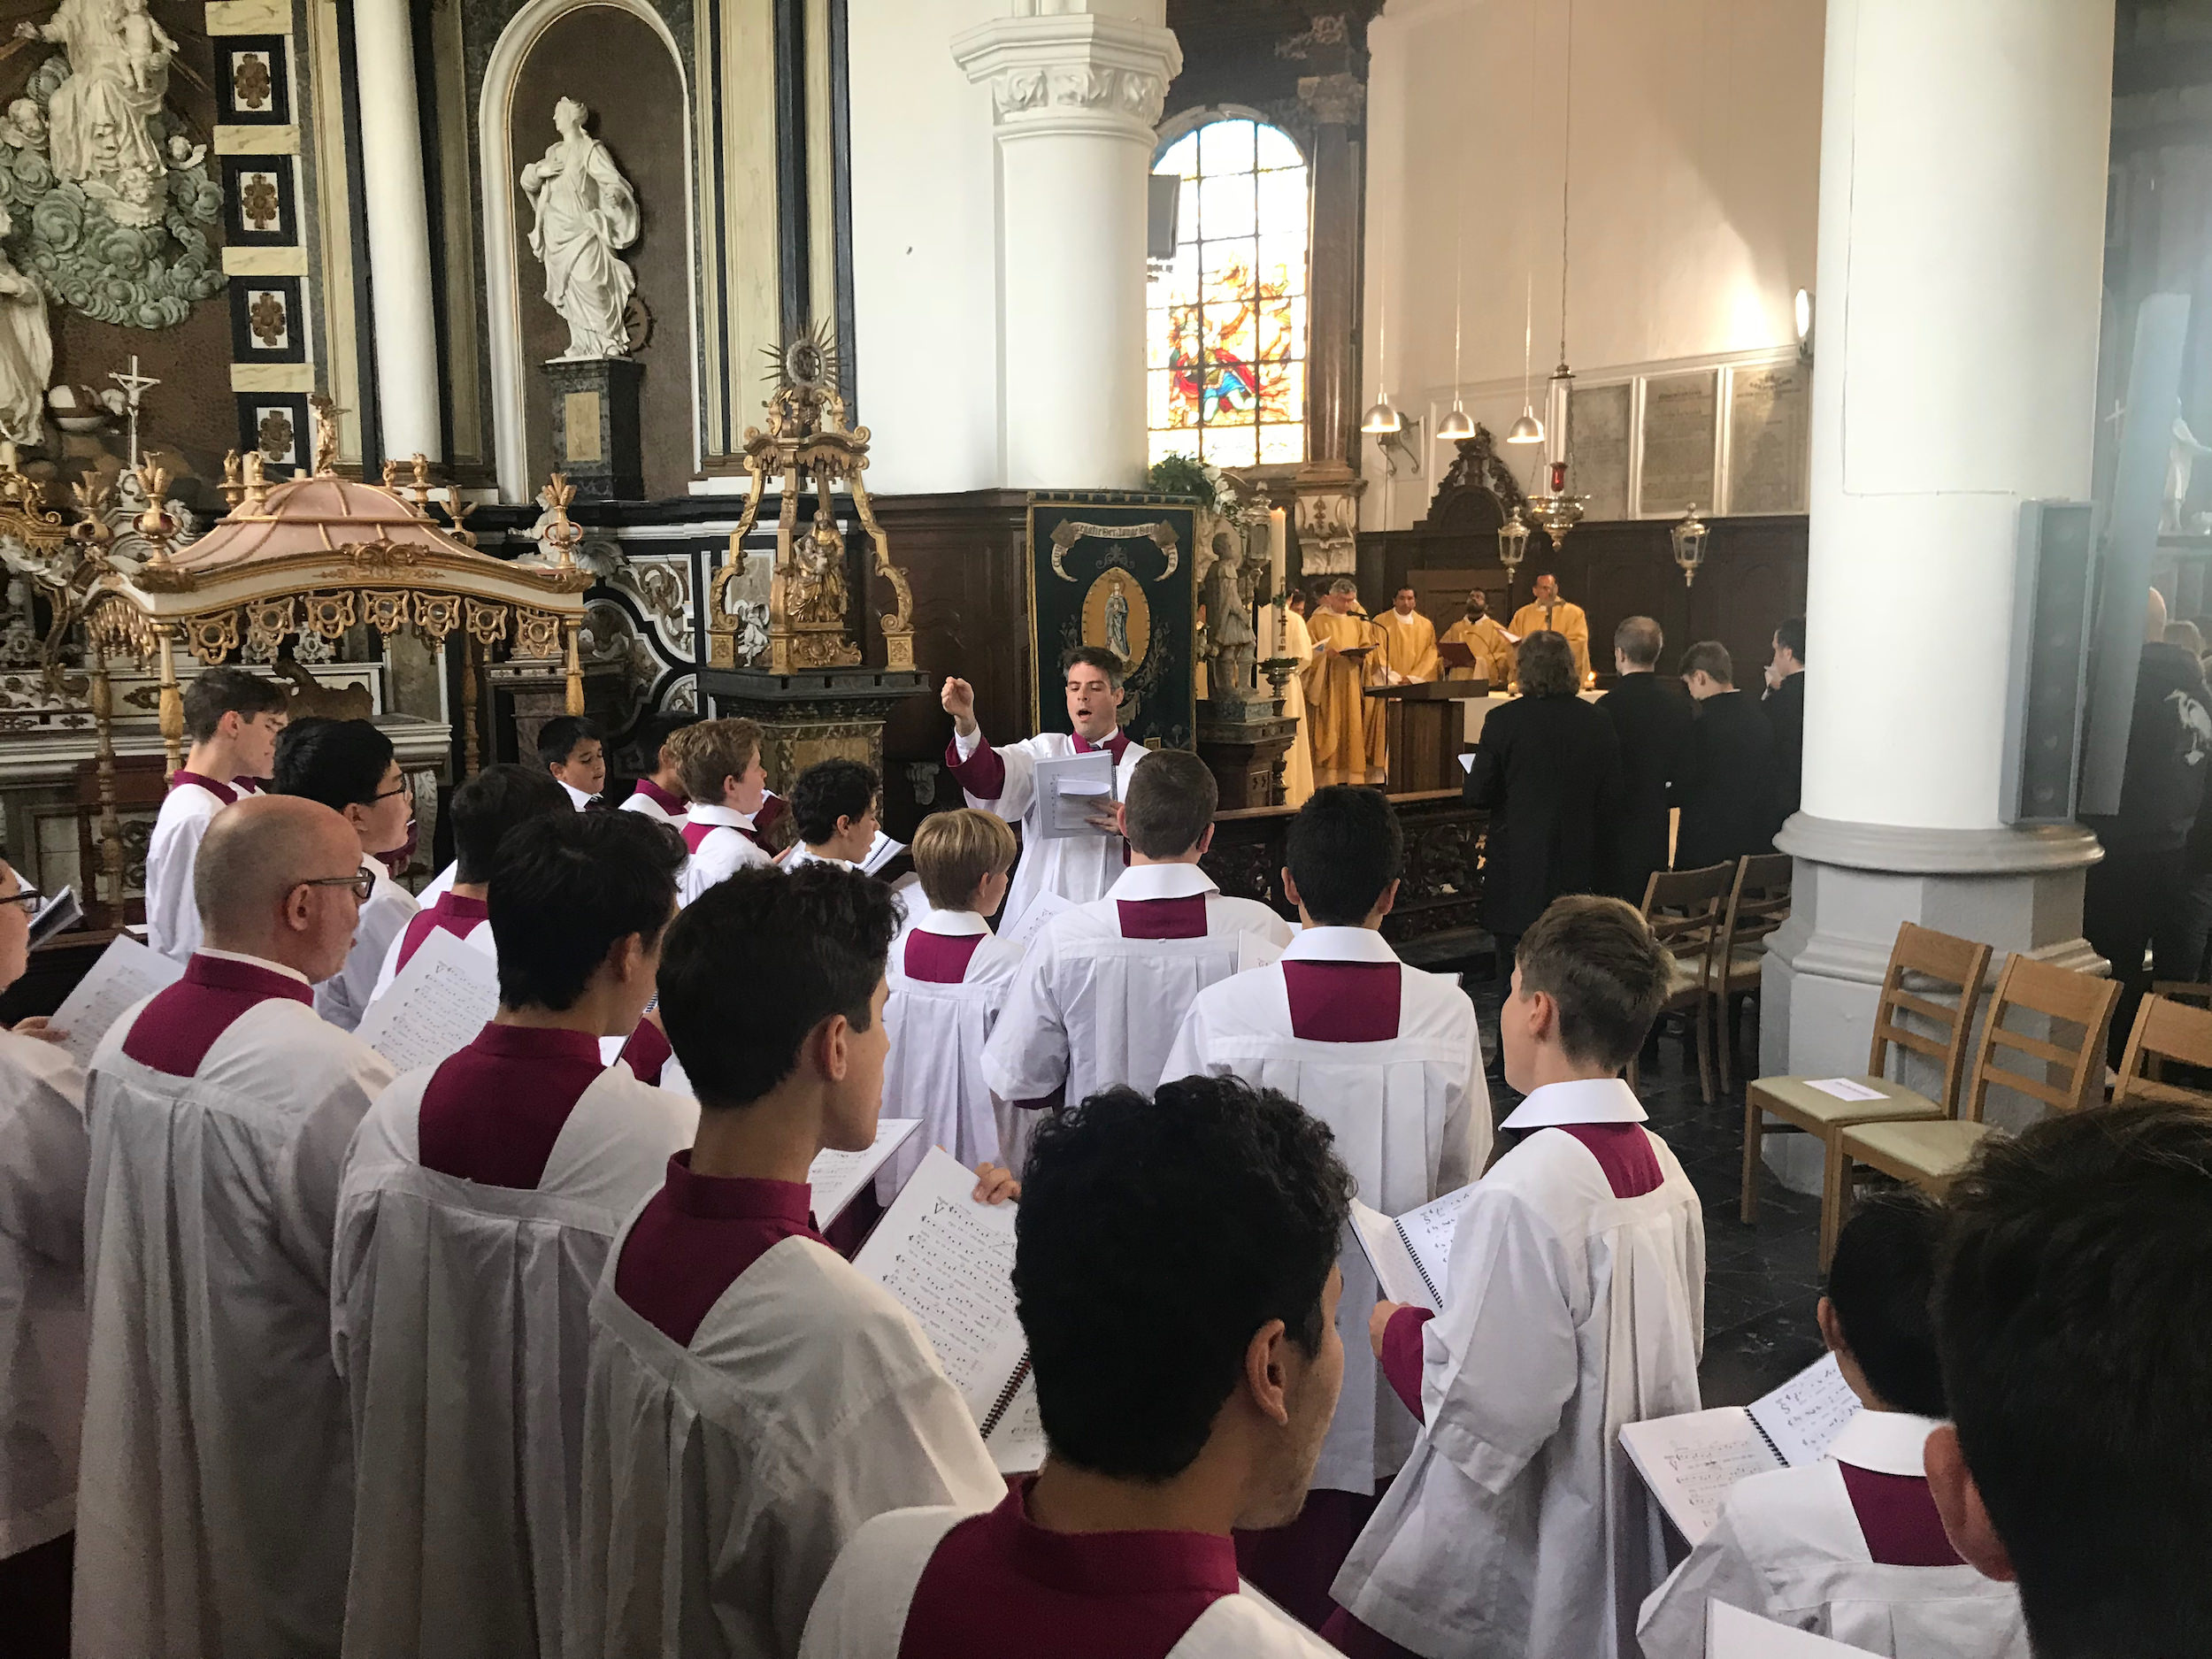 Saint Mary's Cathedral Choir singing at Mass celebrated by the Bishop of Bruges on Saturday 12th May 2018 in the church of St Bavo, Watou.